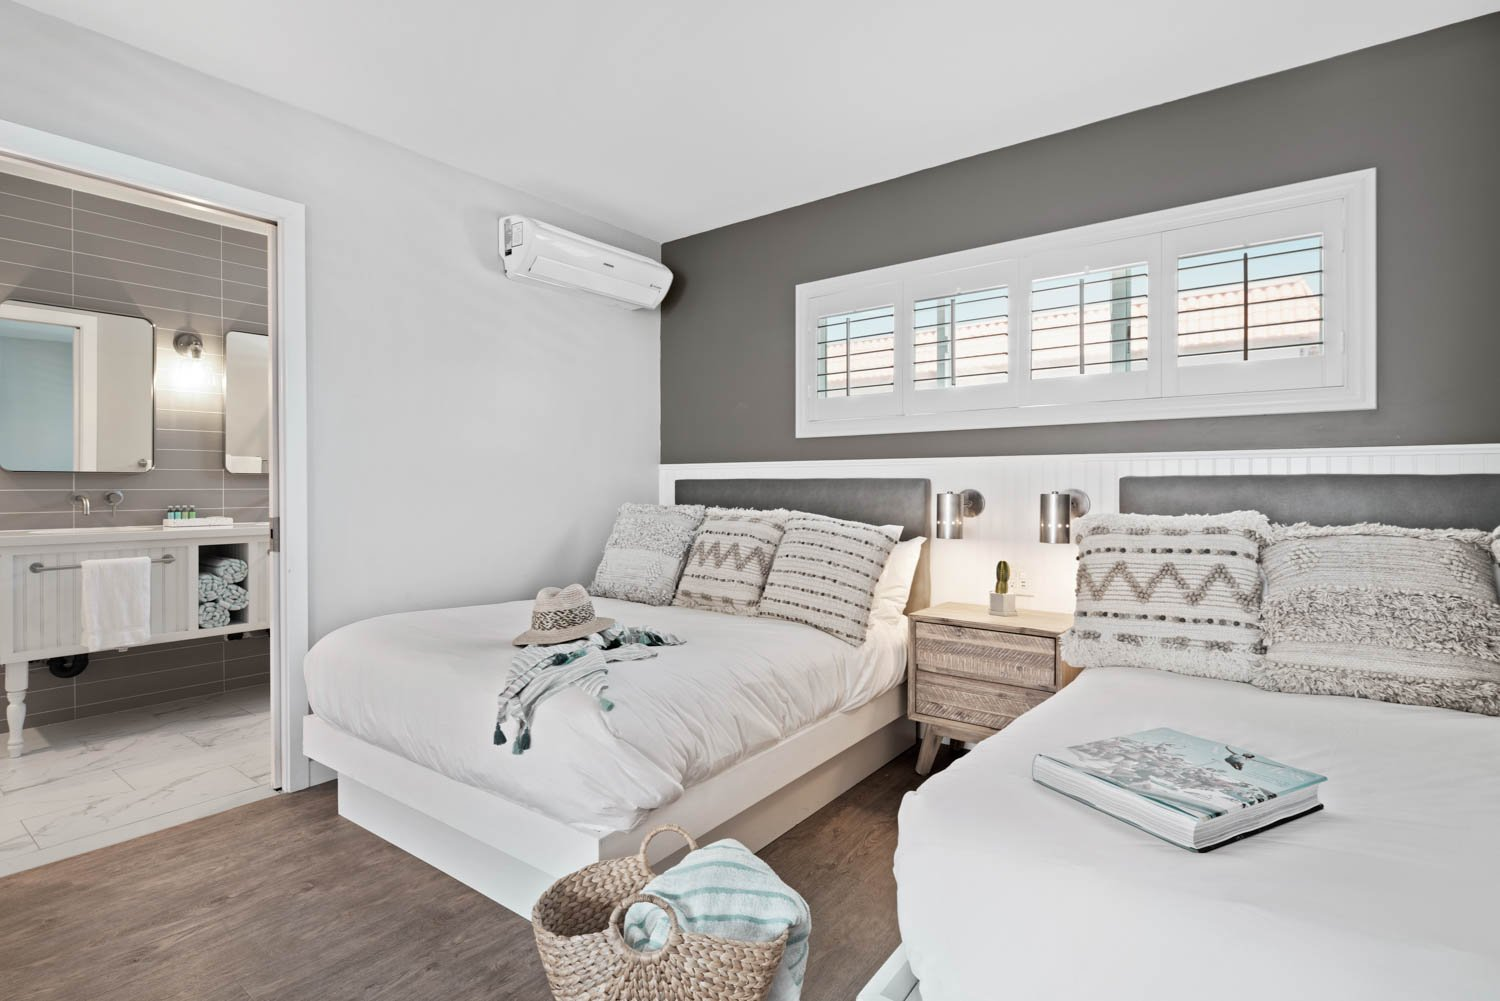 Partial Ocean View Two Full Beds | 335 sq ft